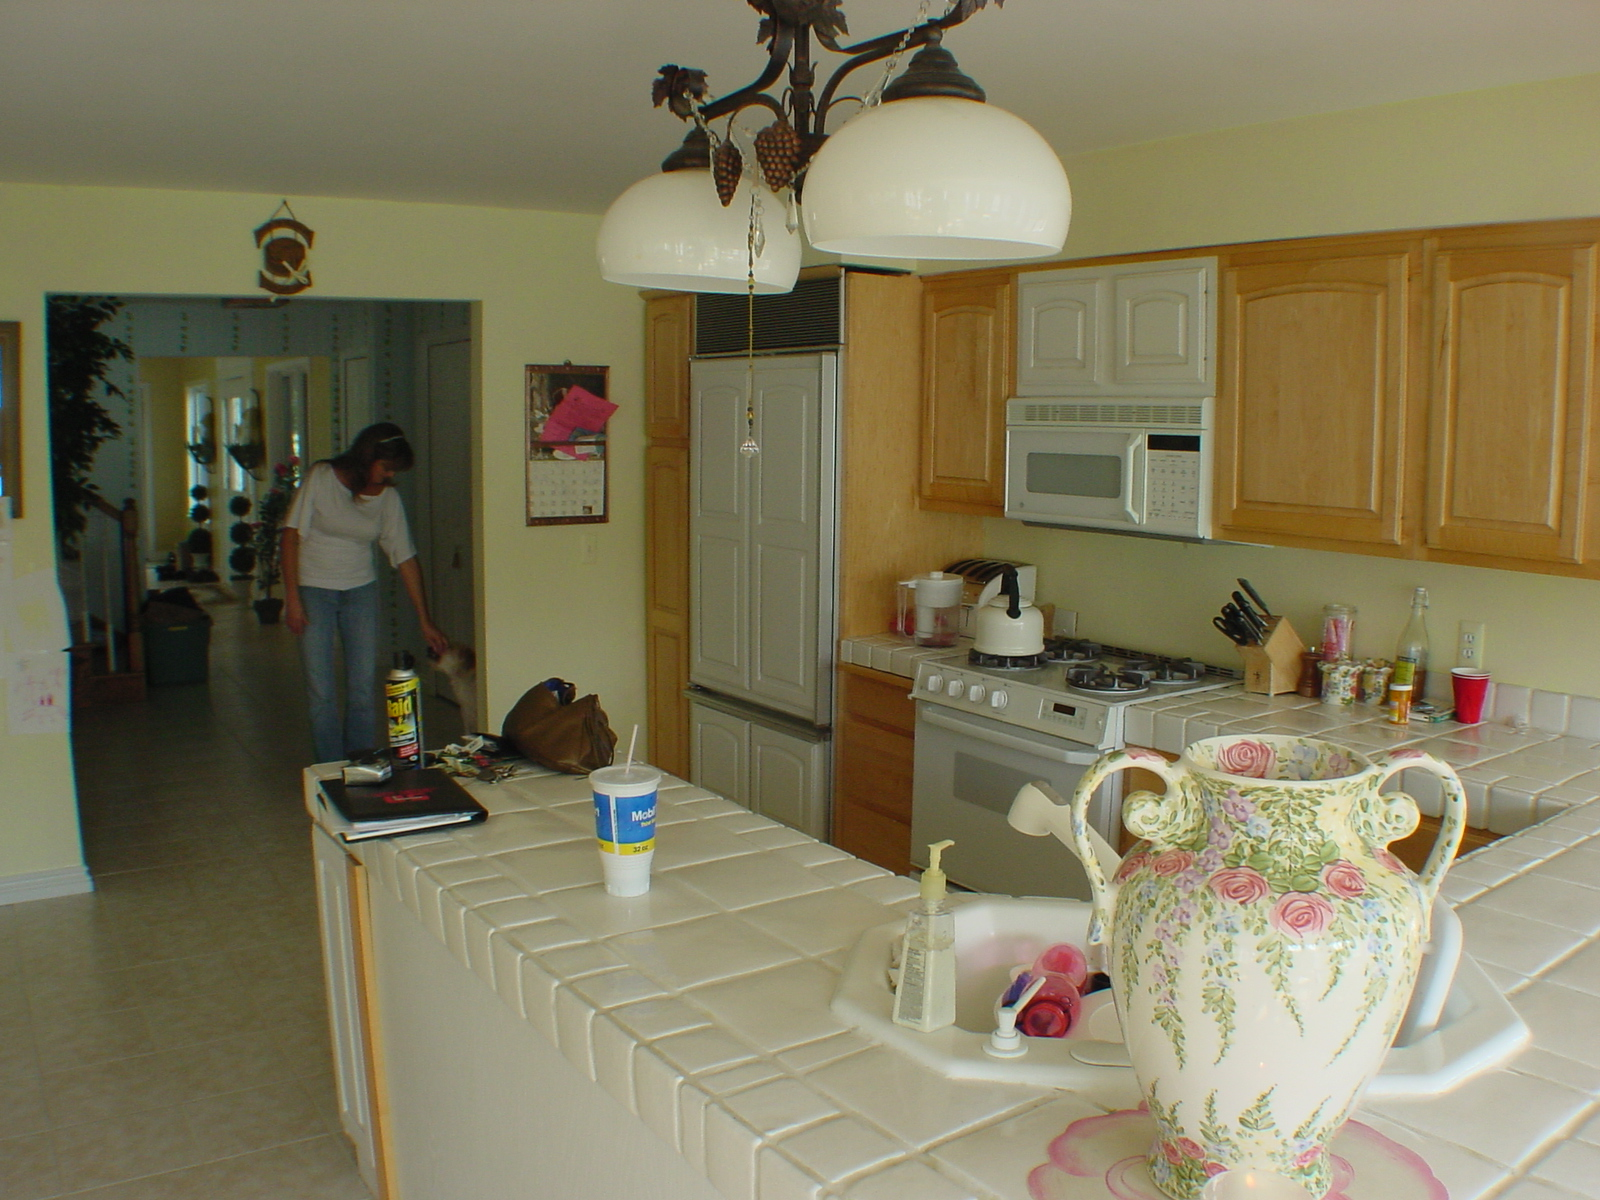 Borchert Building Blog: Ineffective Kitchen Layout: Problem Solved